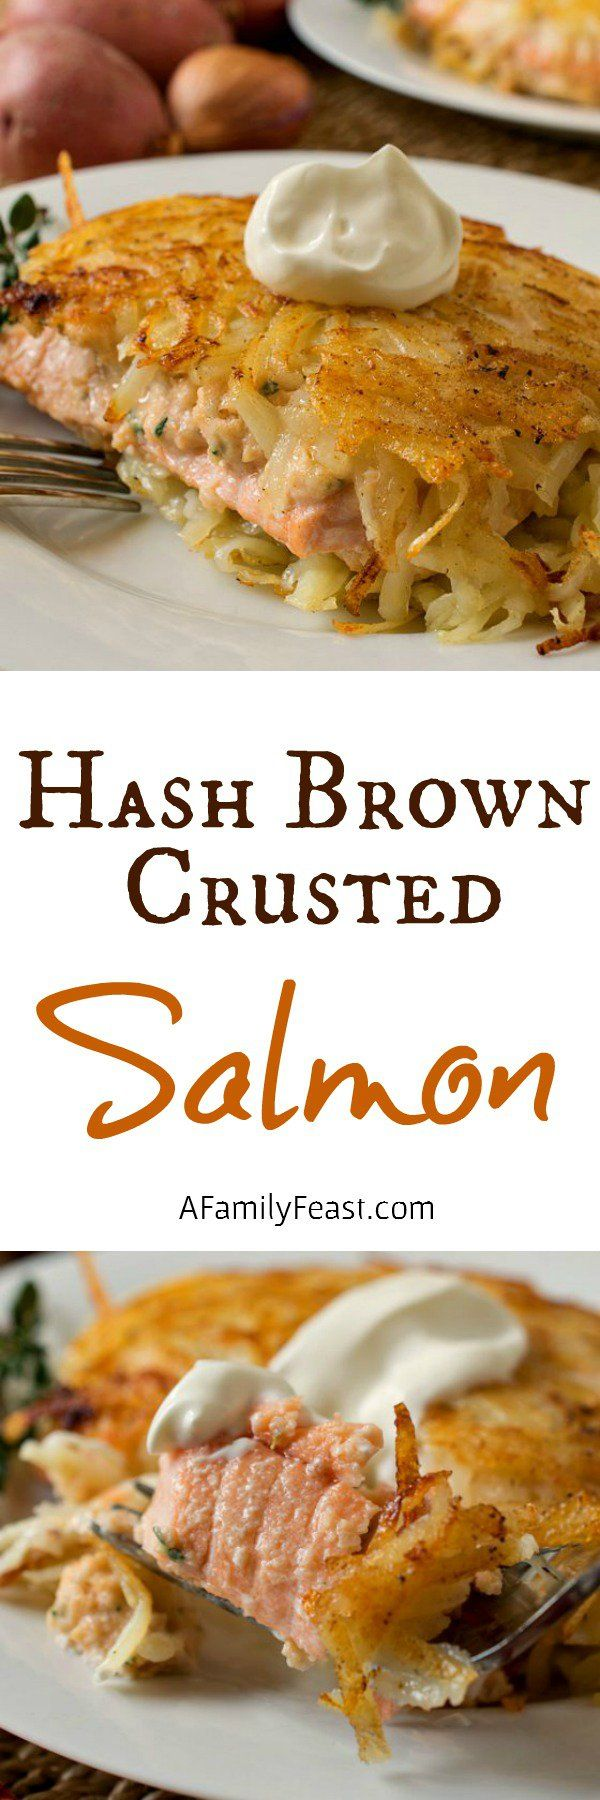 22 best Hashbrown Recipes images on Pinterest   American food, Grill ...